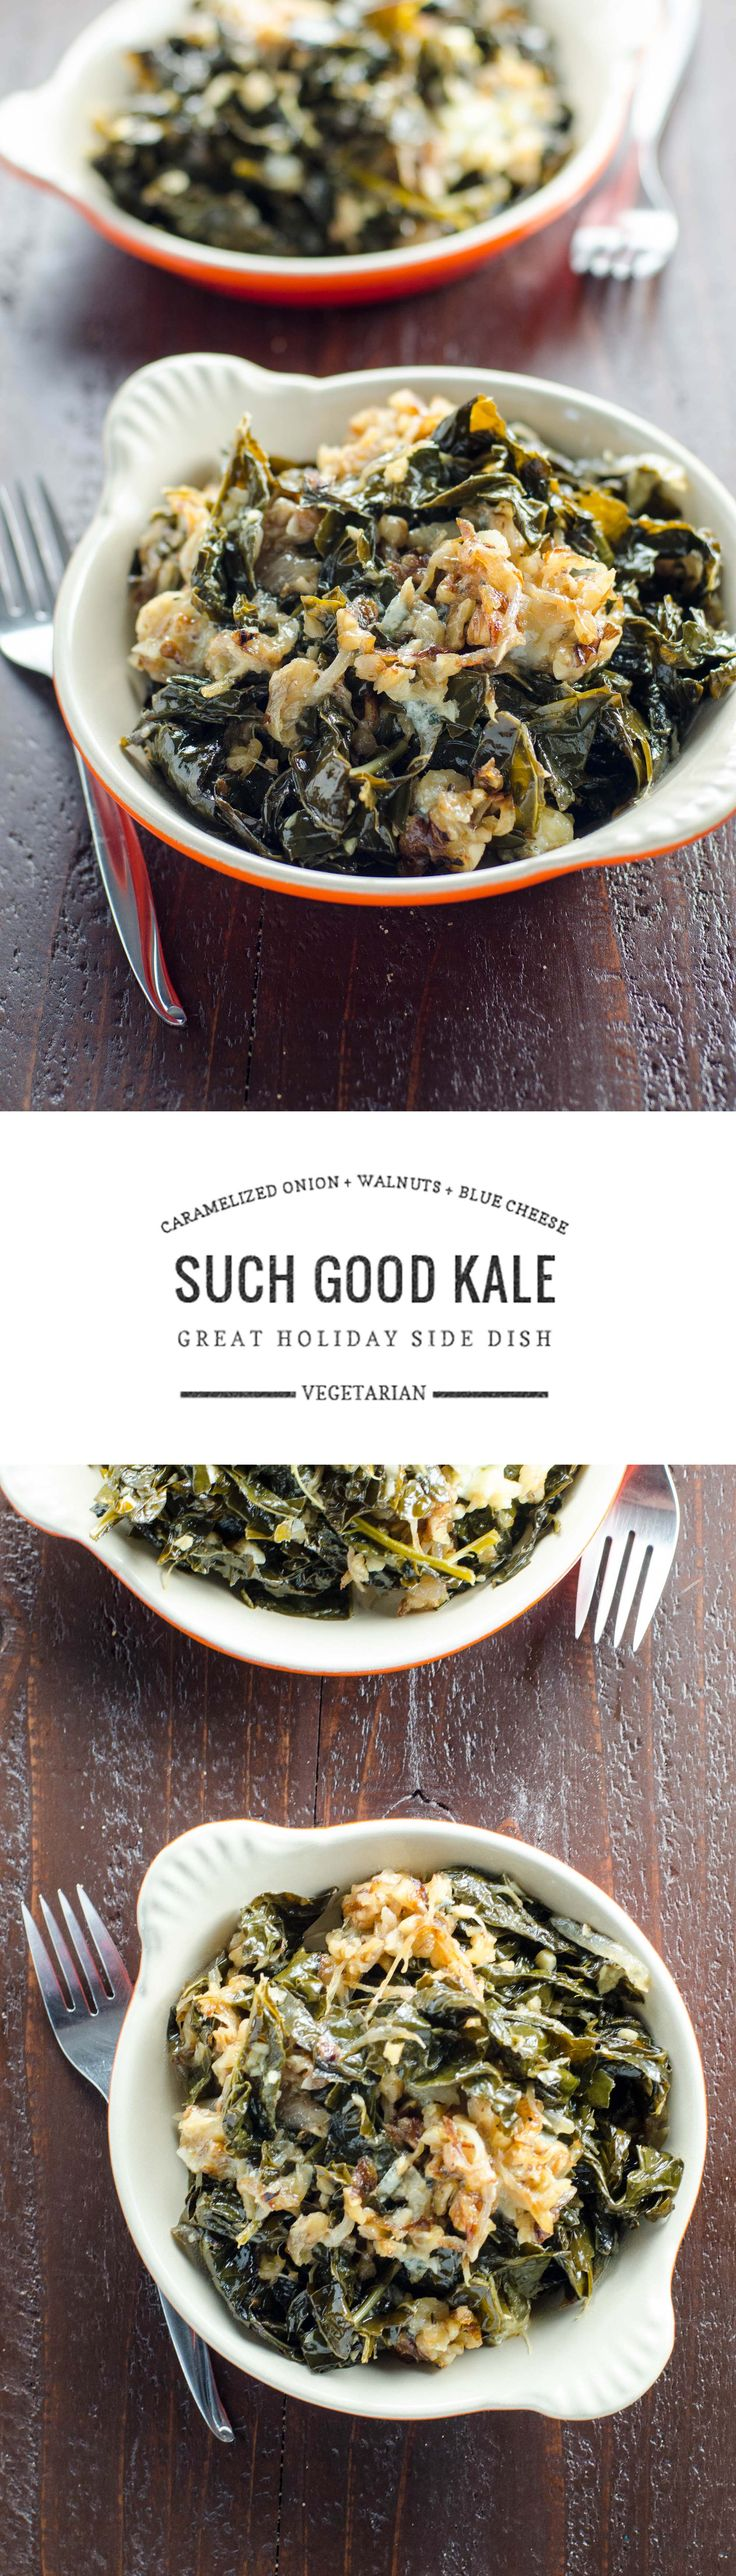 If braised kale doesn't sound like something you'd run toward, may I have a moment to convince you otherwise? If I do say so myself, this is a pretty exciting installment of the Crisper Whisperer. Why is that, you may be asking in appropriately hushed tones? Well, this is why. The cruciferous crowd is all …